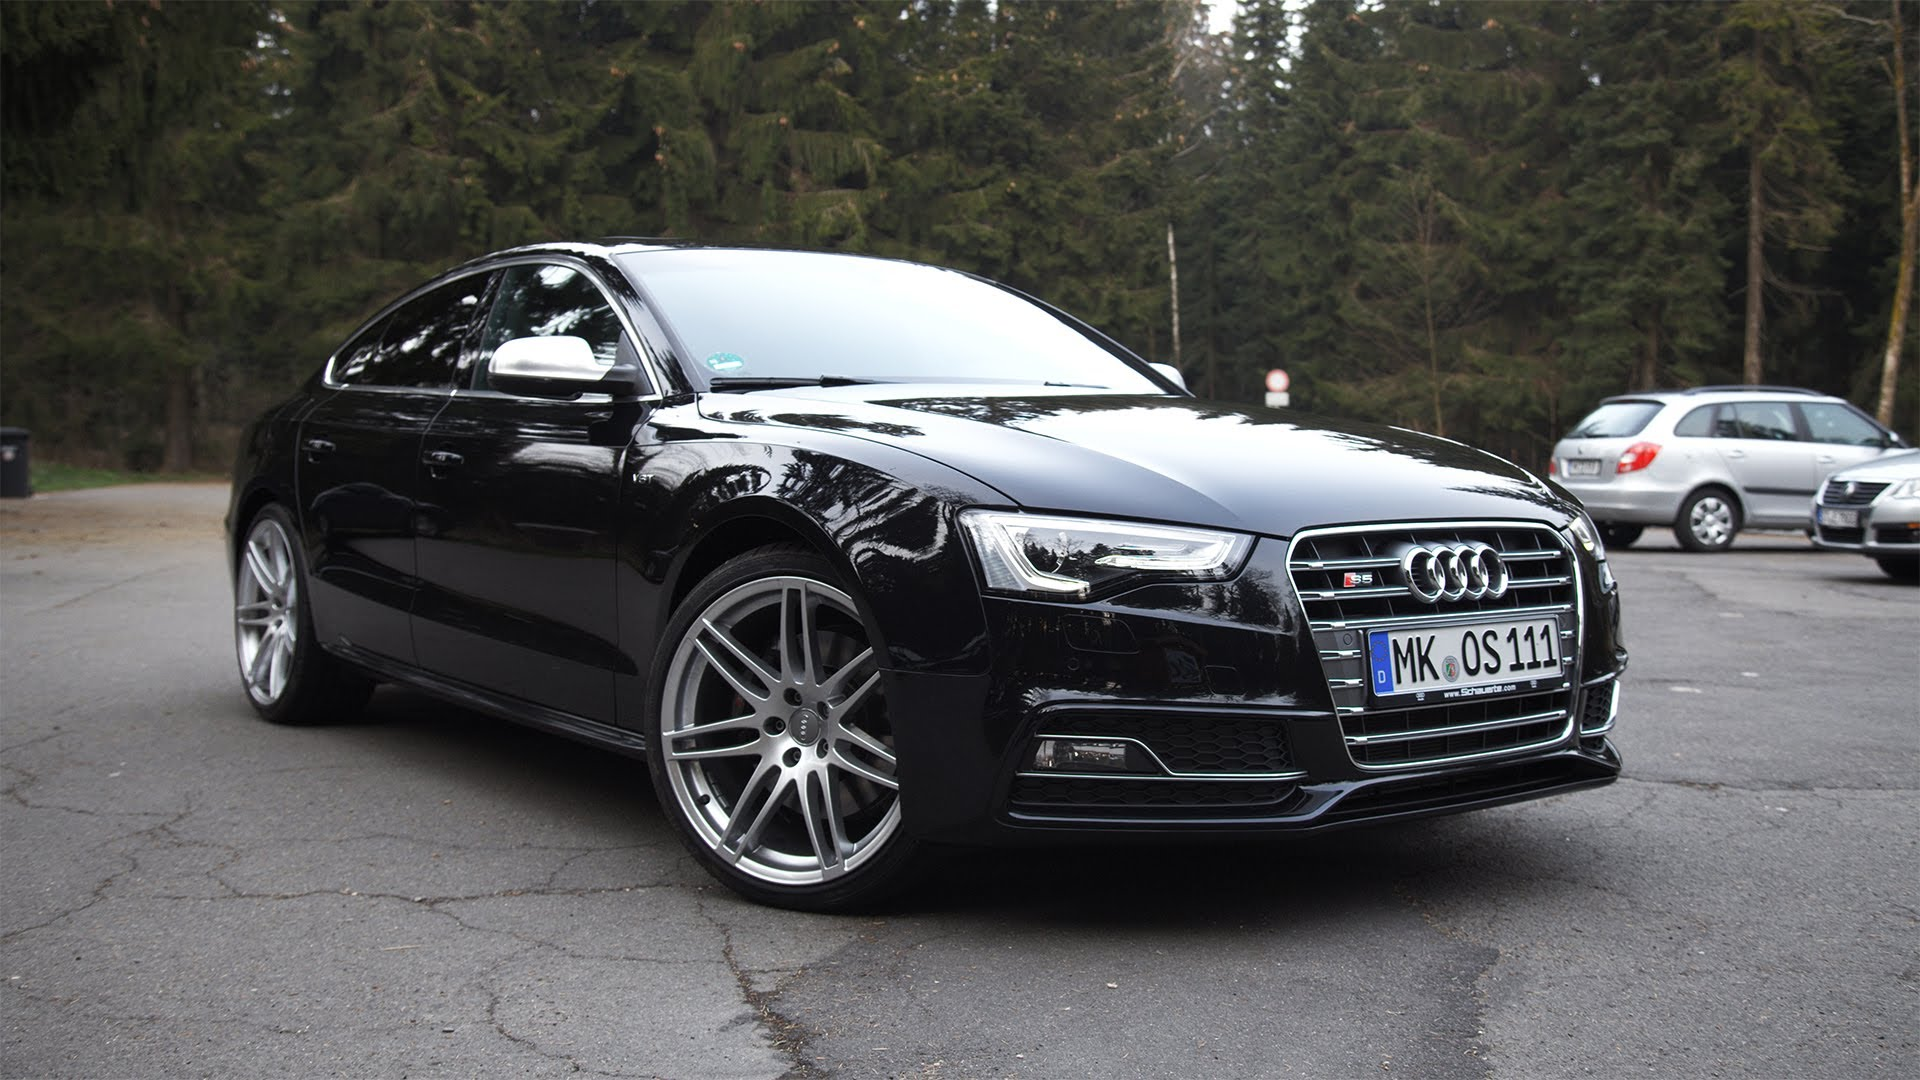 audi s5 pictures #3